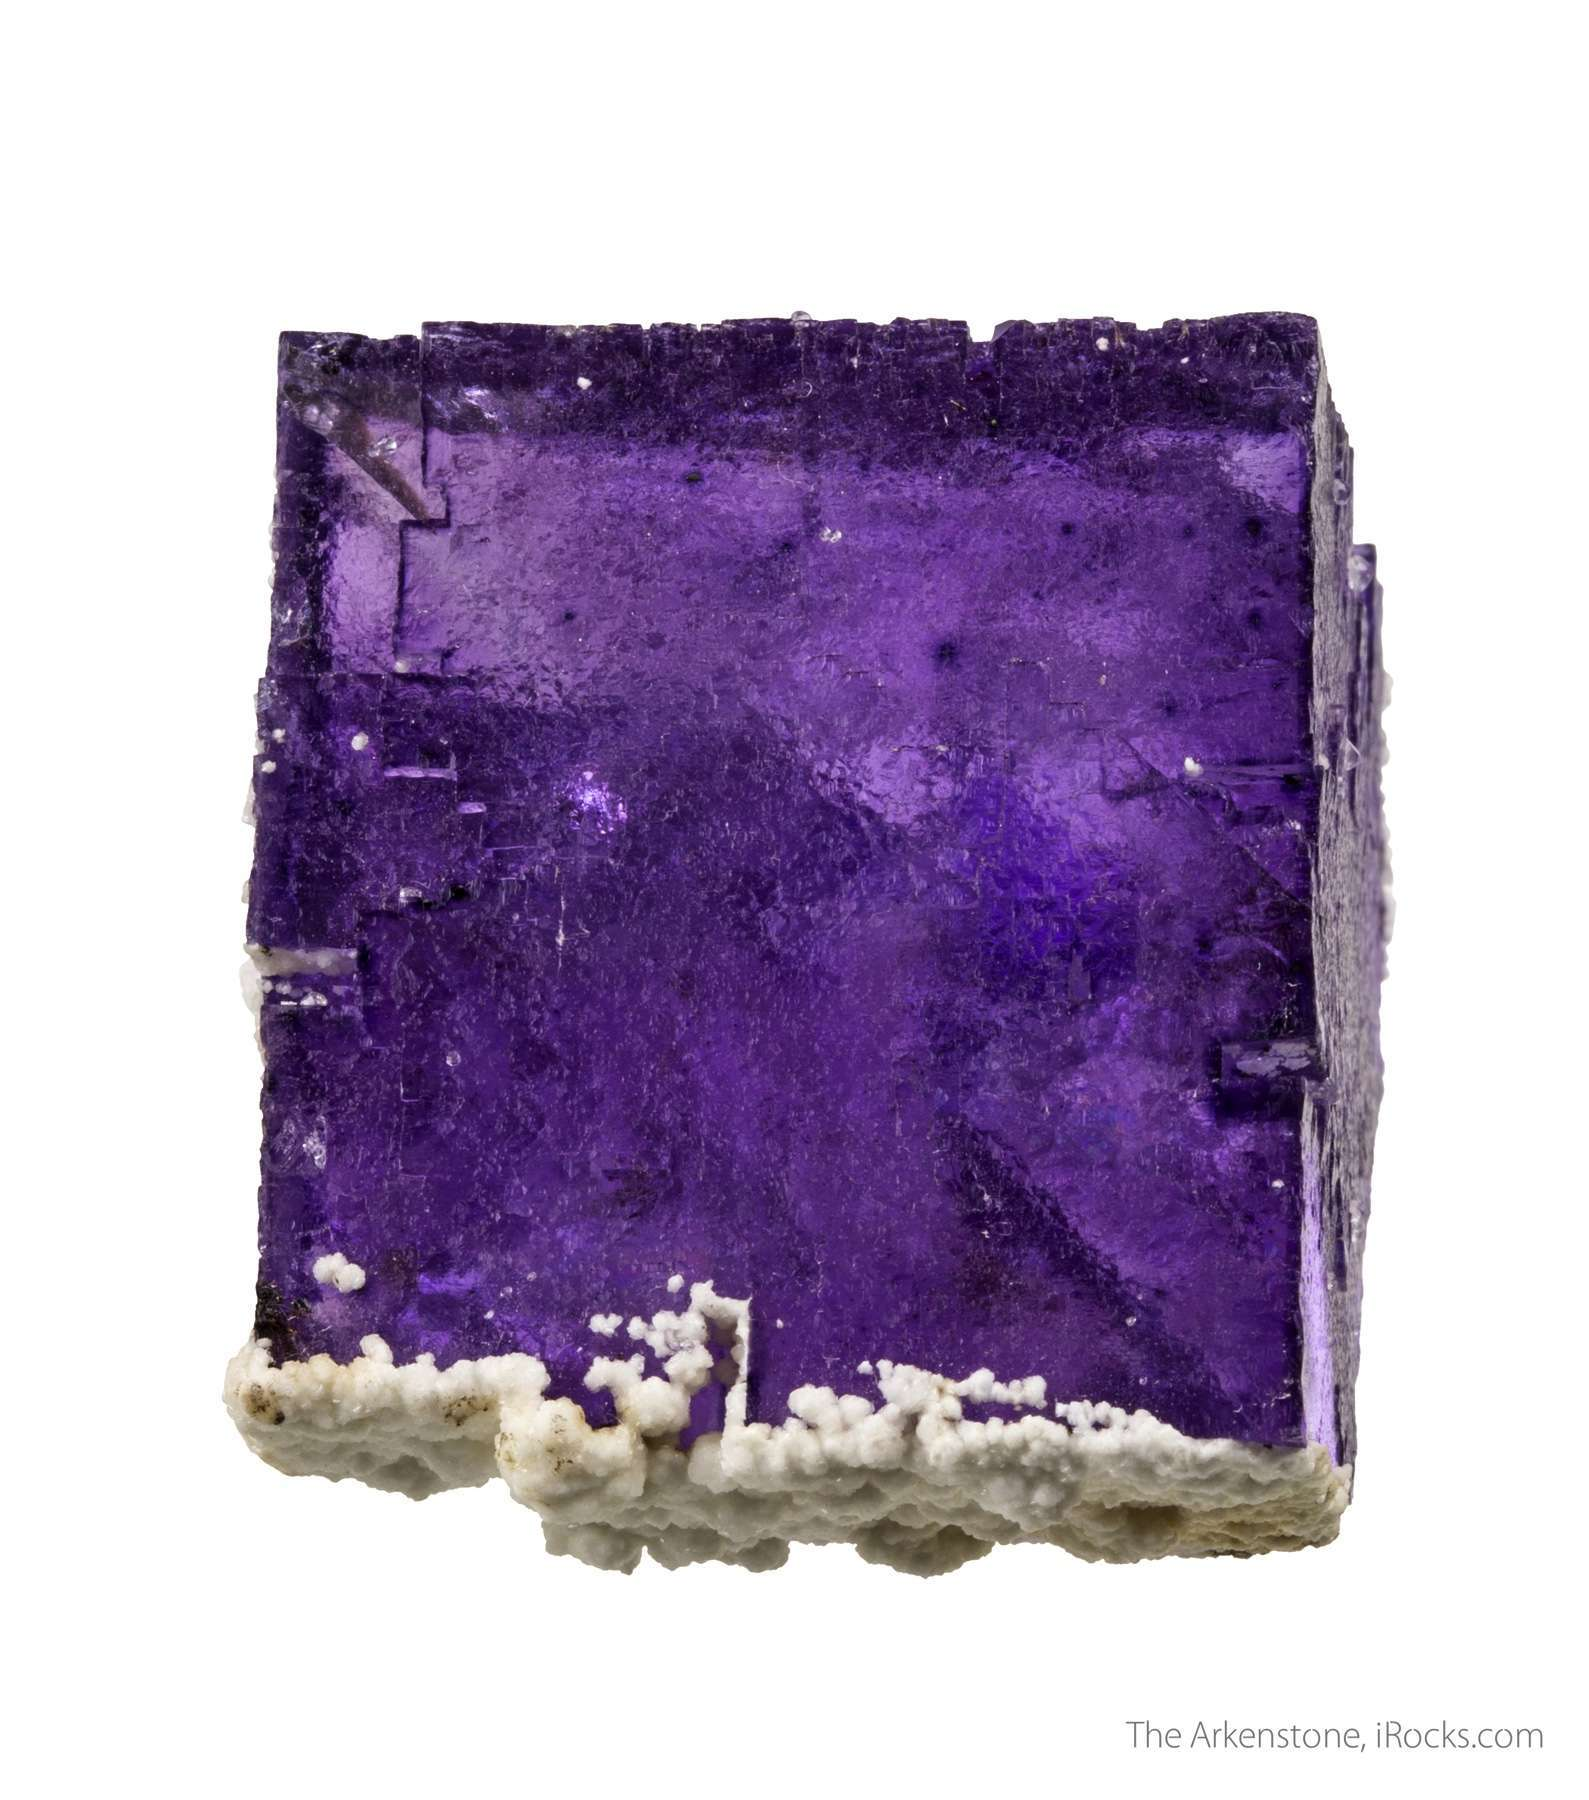 This lustrous gemmy crystal fluorite colored saturated purple hue